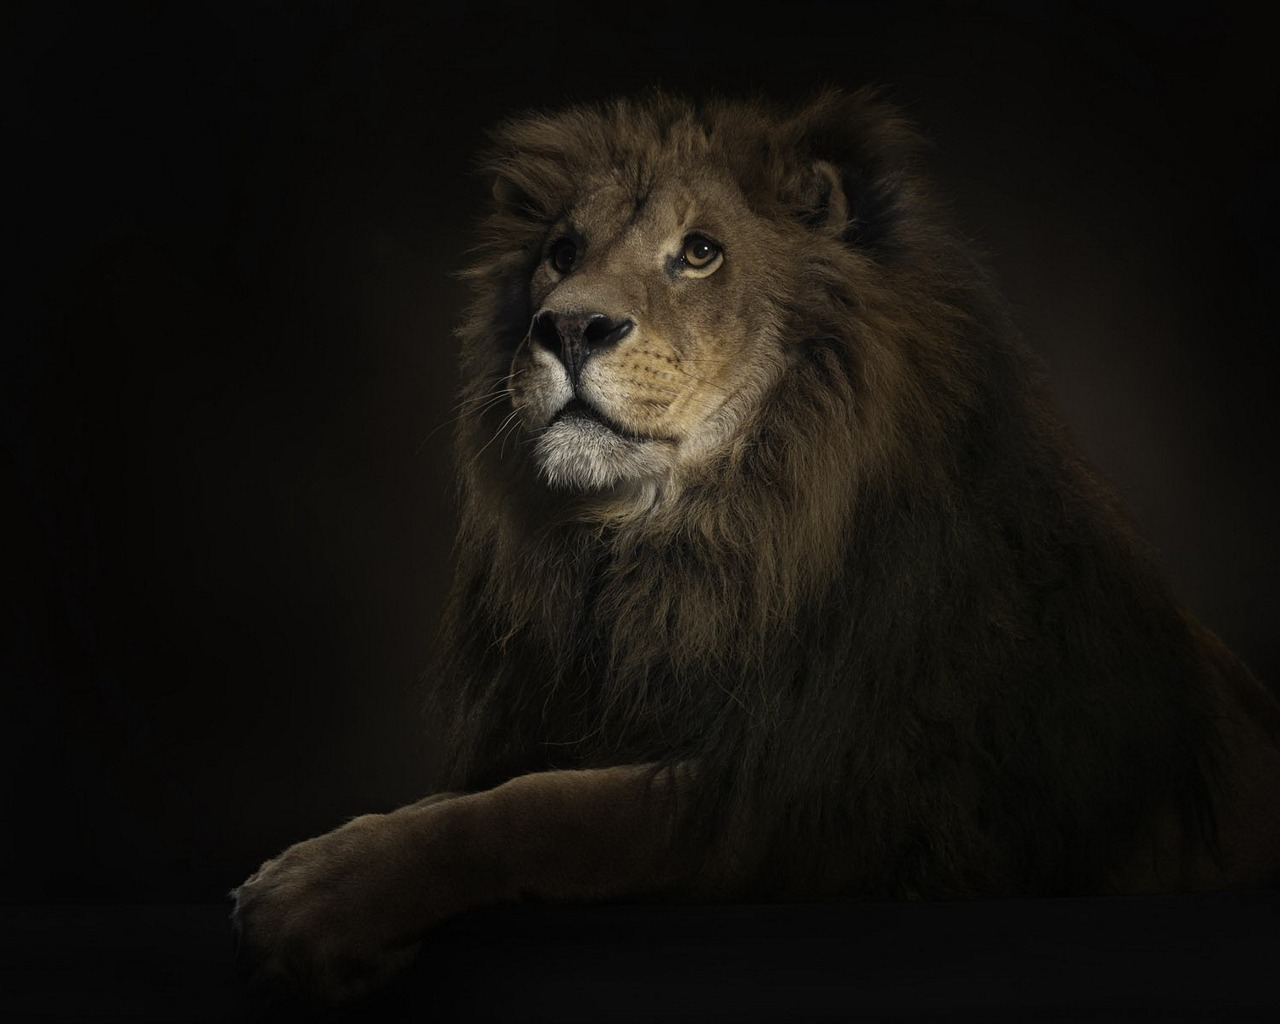 amazing animals wallpapers most worlds awesome animal lion hd nature angry wallpapersafari earth looking